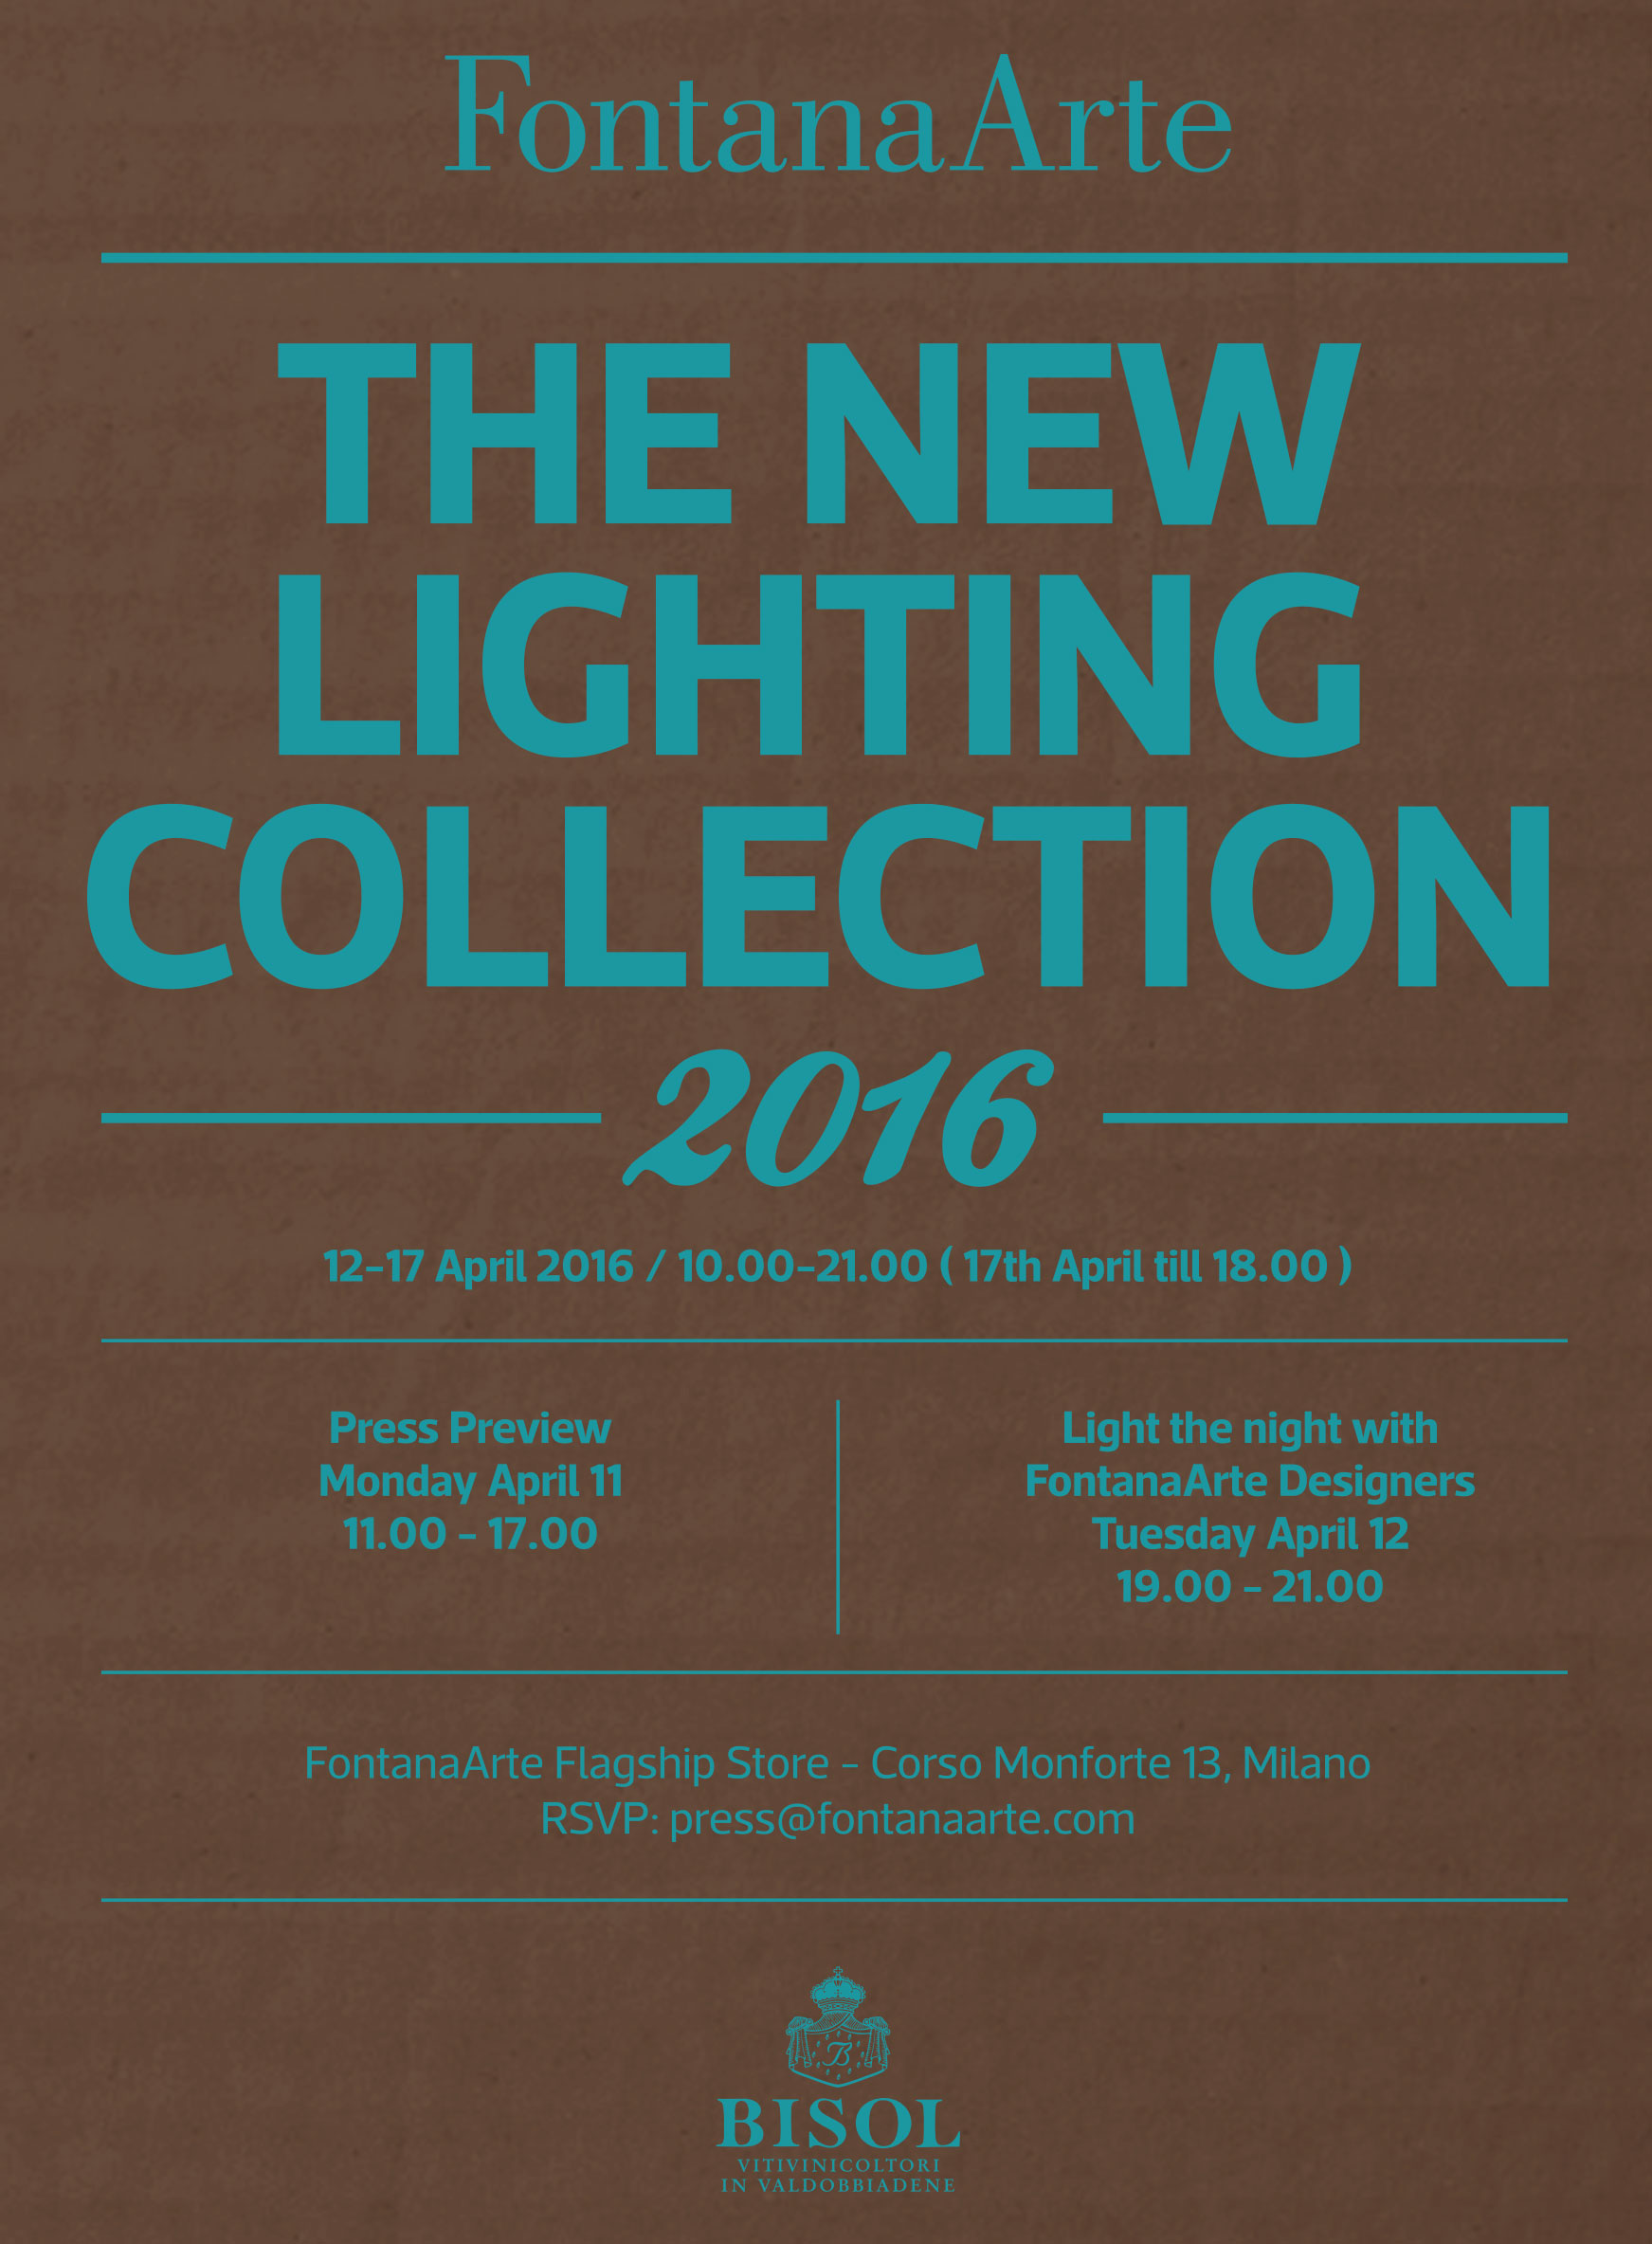 The new lighting collection 2016 | Fuorisalone.it